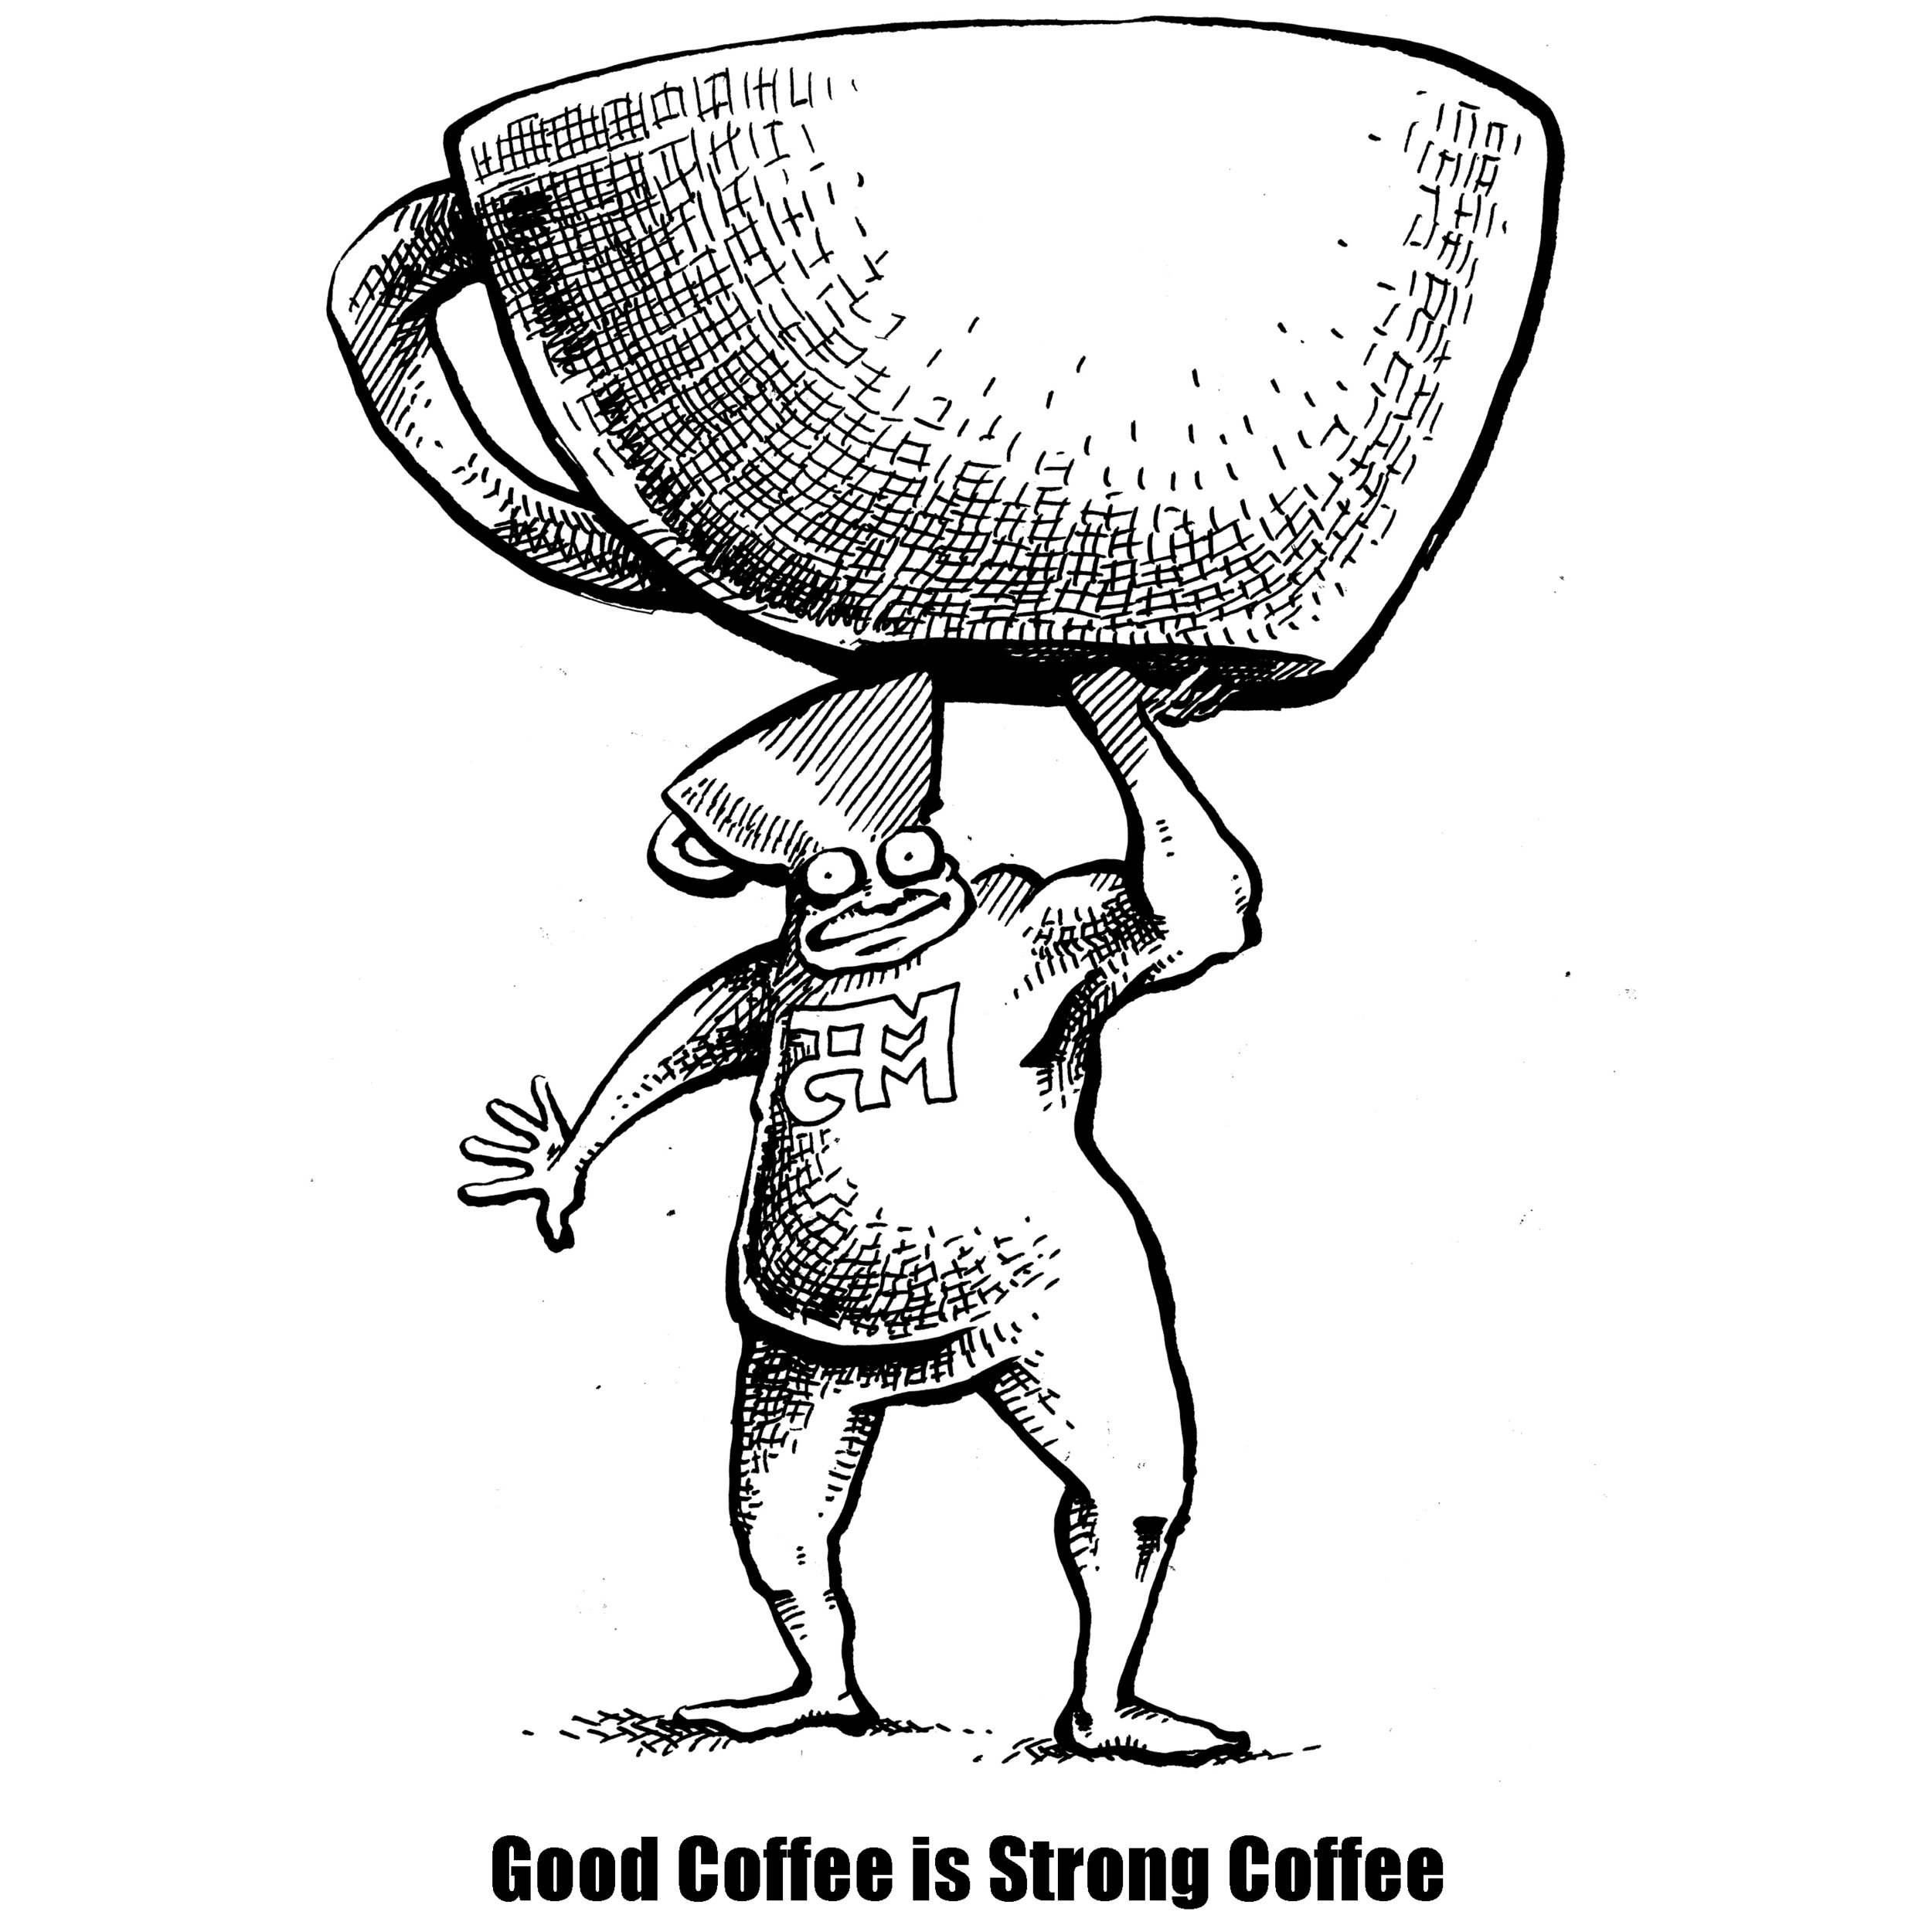 Good Coffee is Strong Coffee